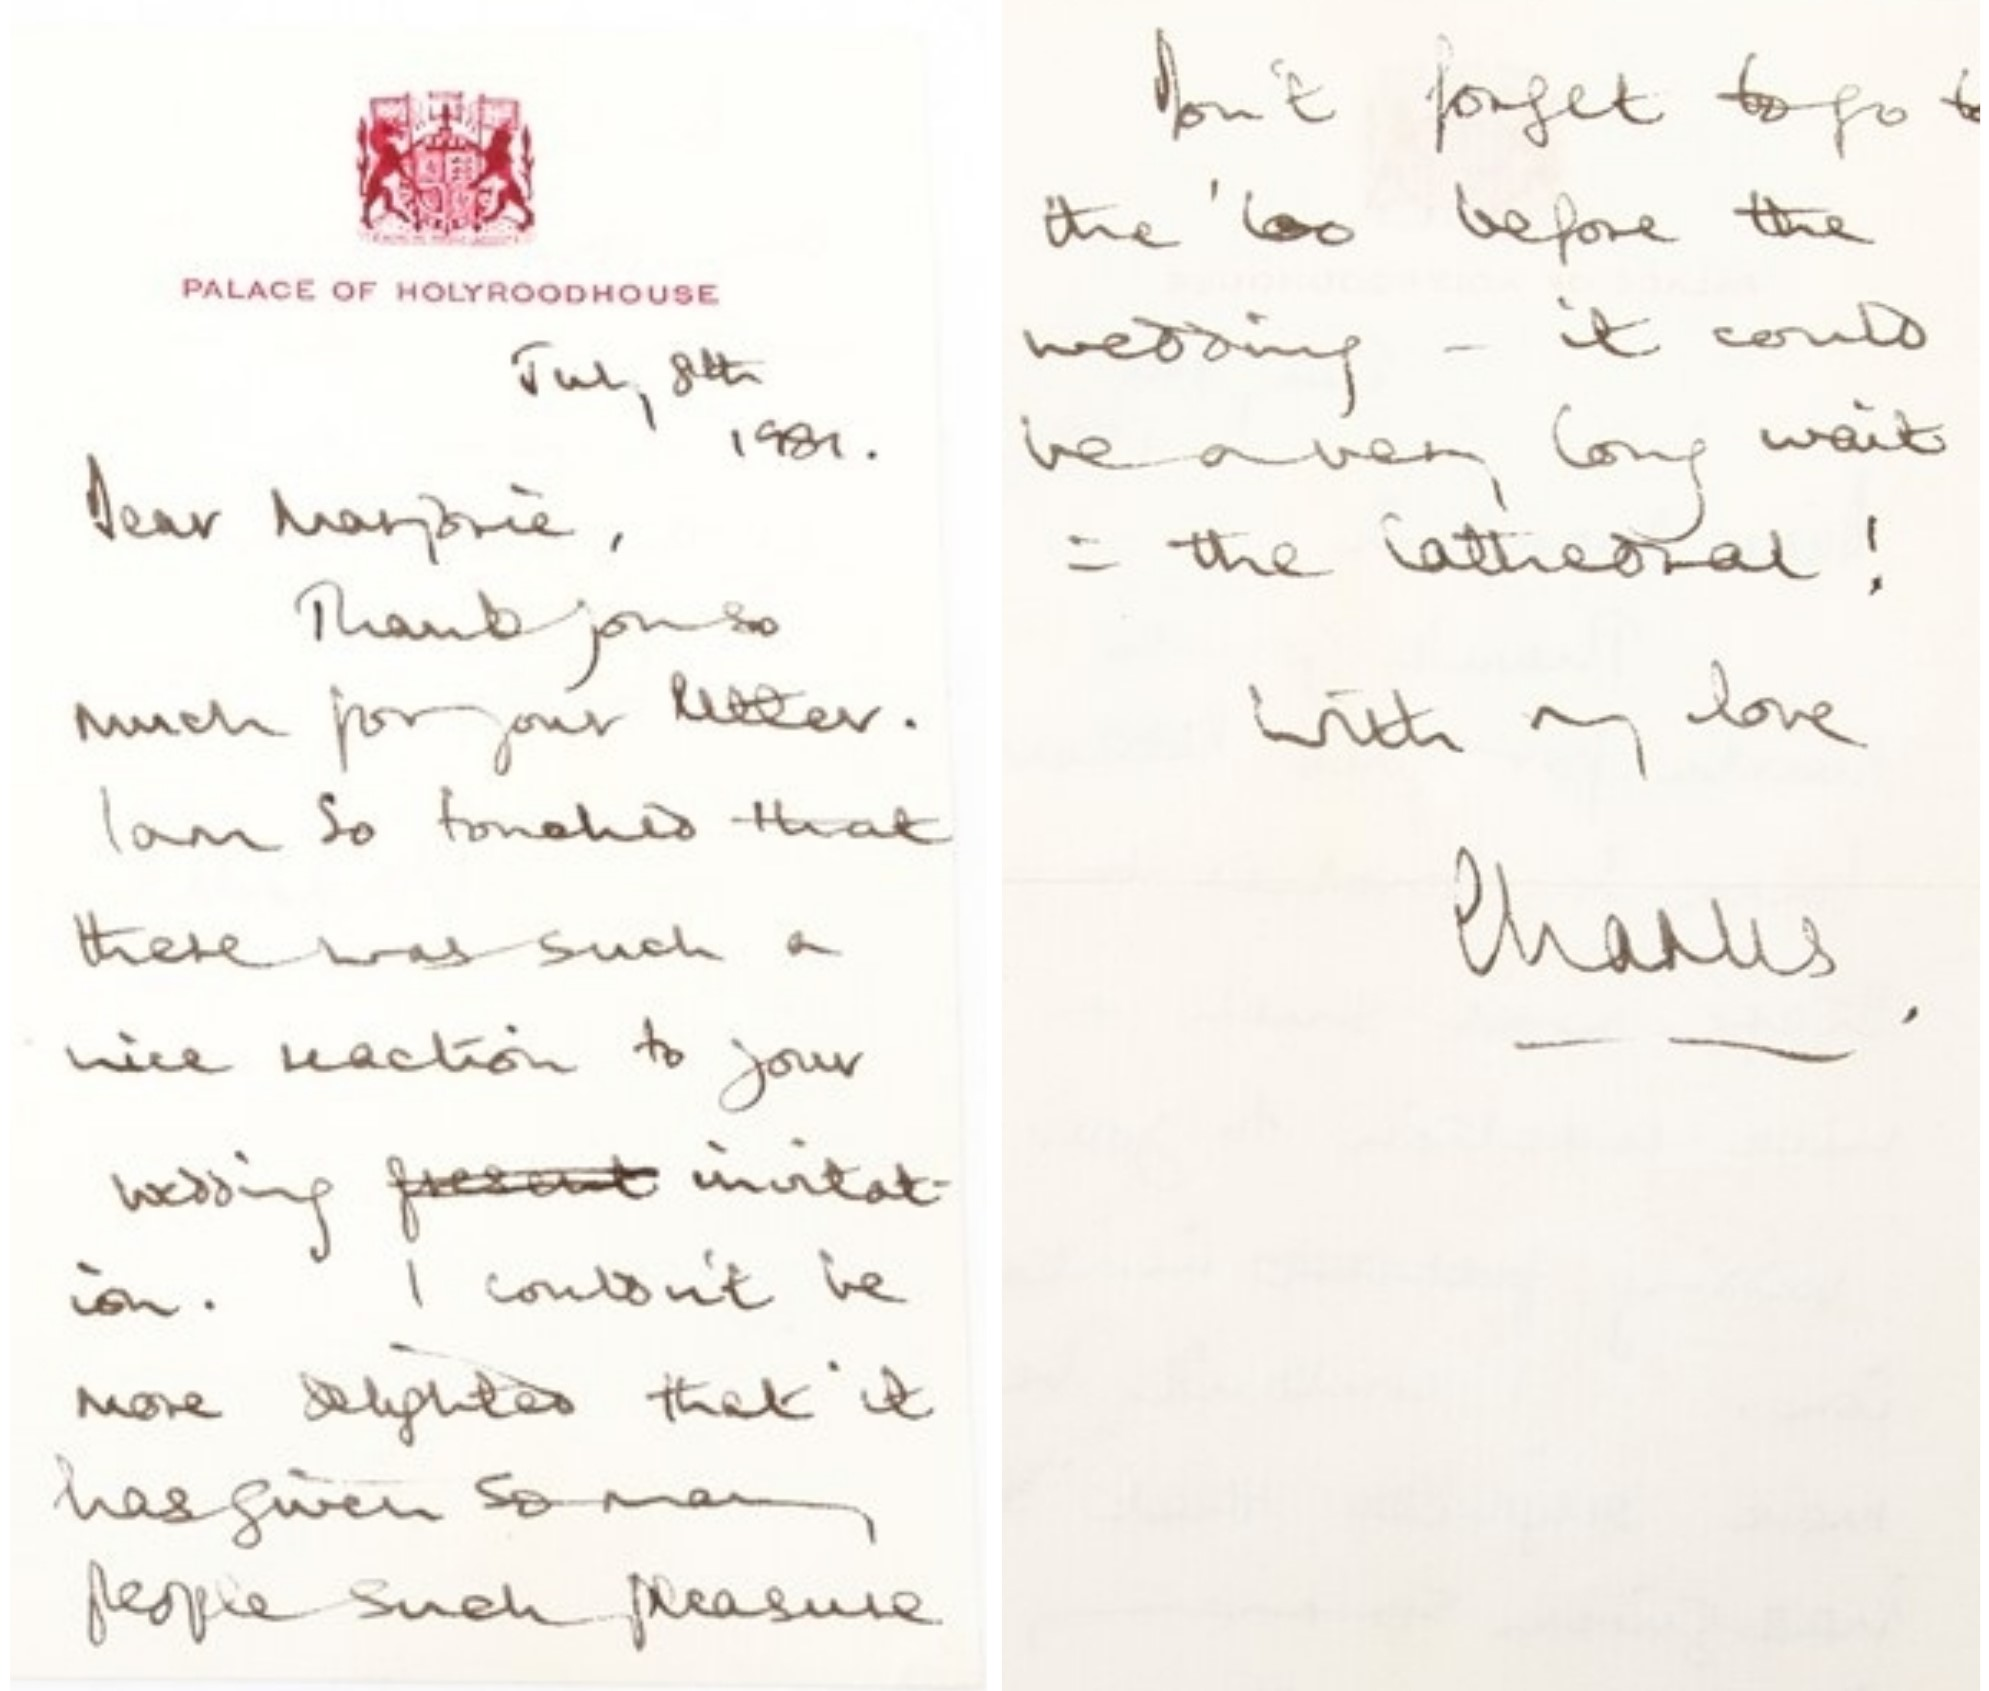 Charles letter ahead of his wedding to Diana